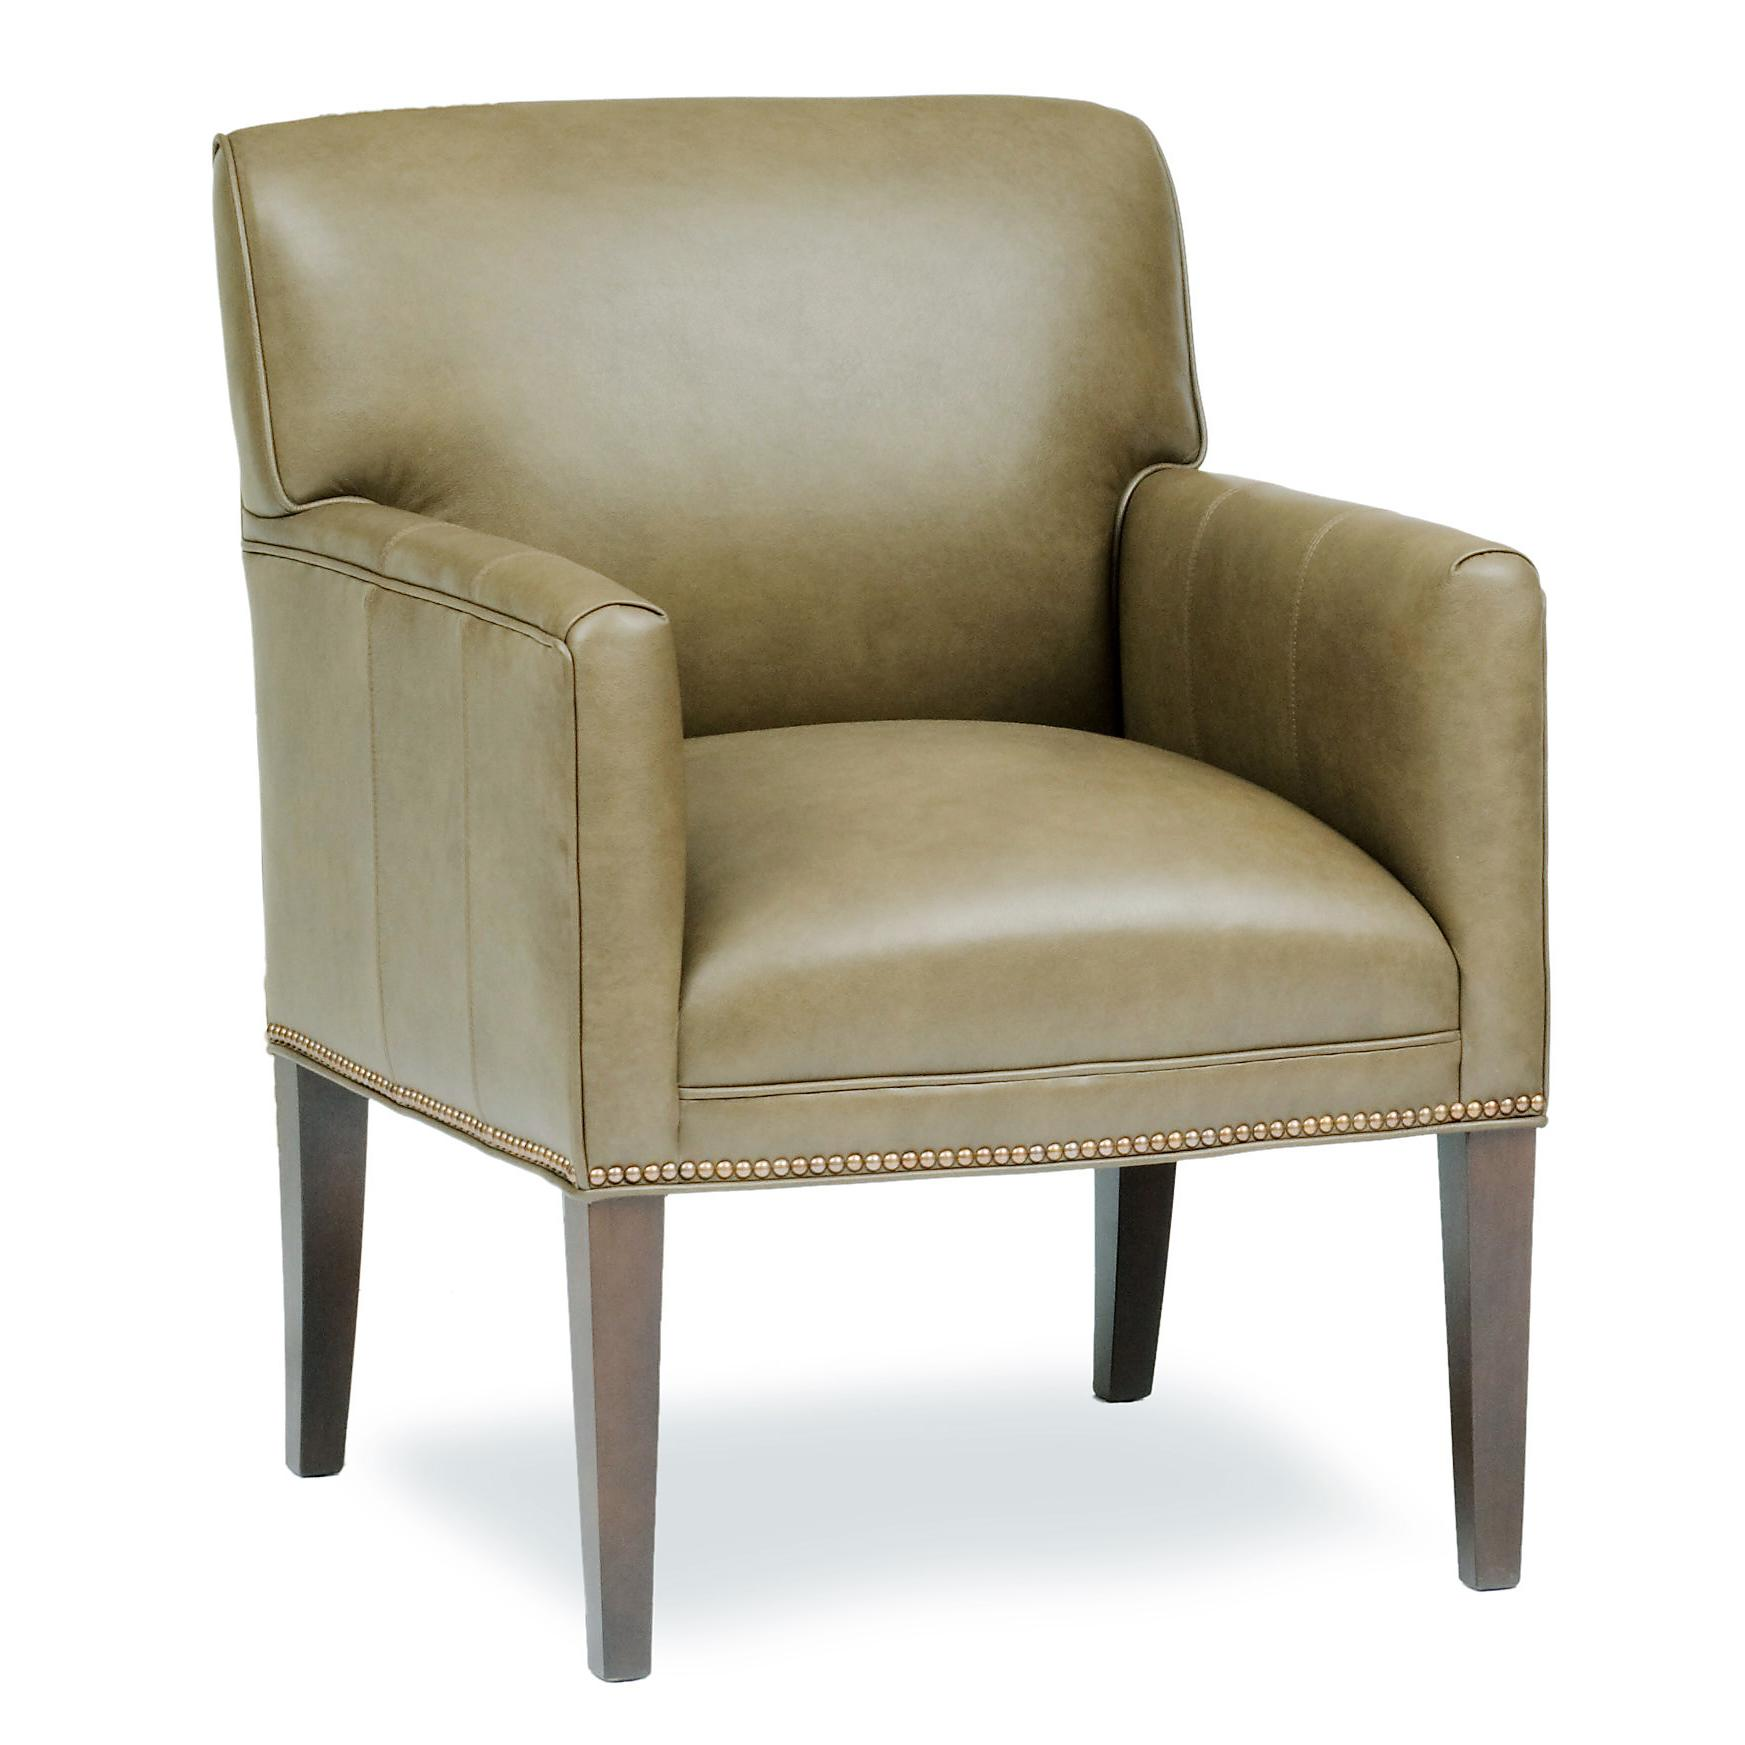 Accent Chairs and Ottomans SB Upholstered Chair by Smith Brothers at Sprintz Furniture